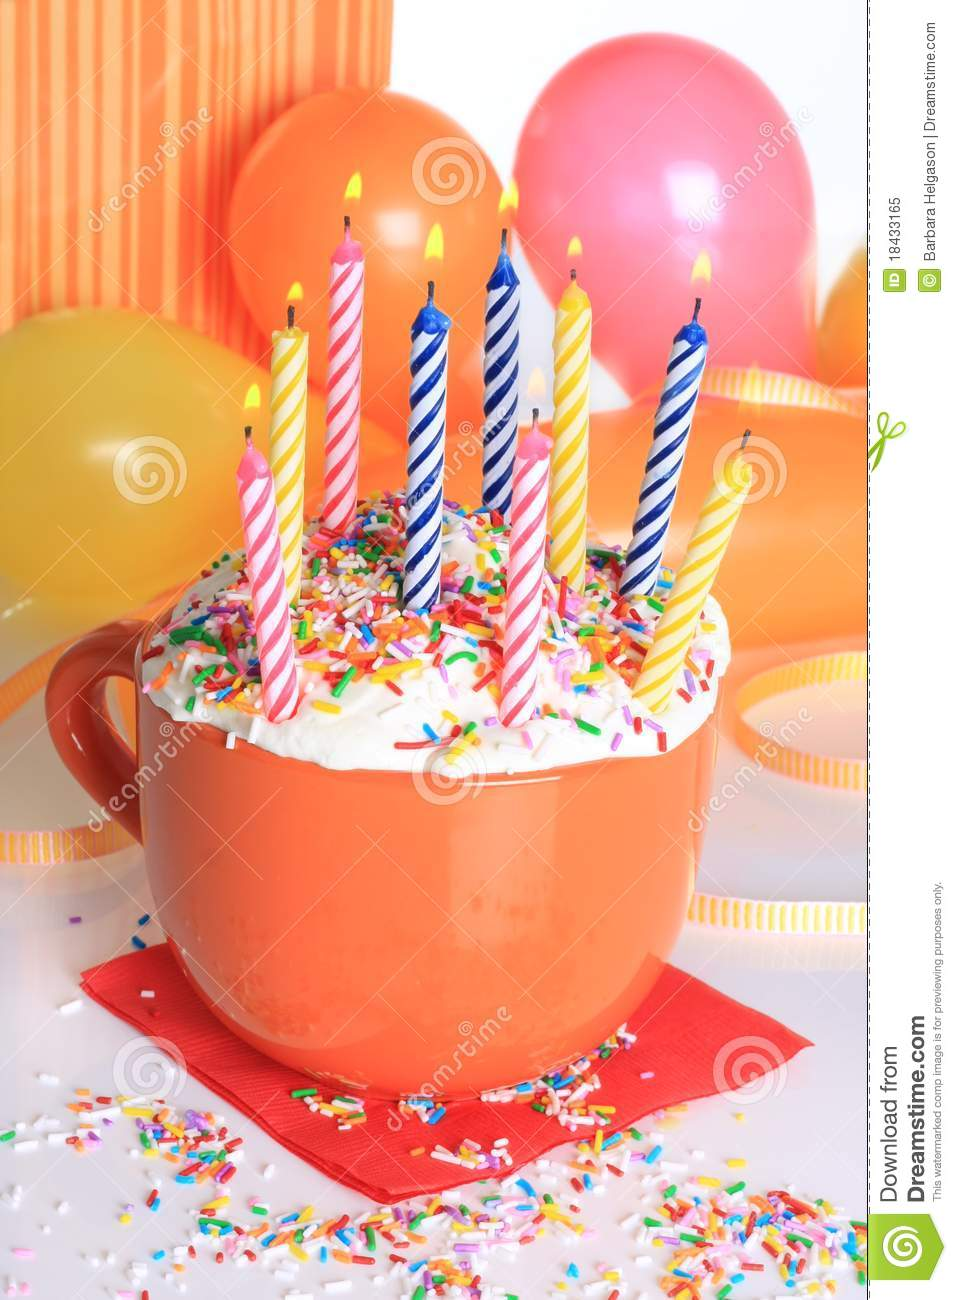 Happy birthday lit candles on colorful balloons royalty free stock - Happy Birthday Cupcake And Candles Royalty Free Stock